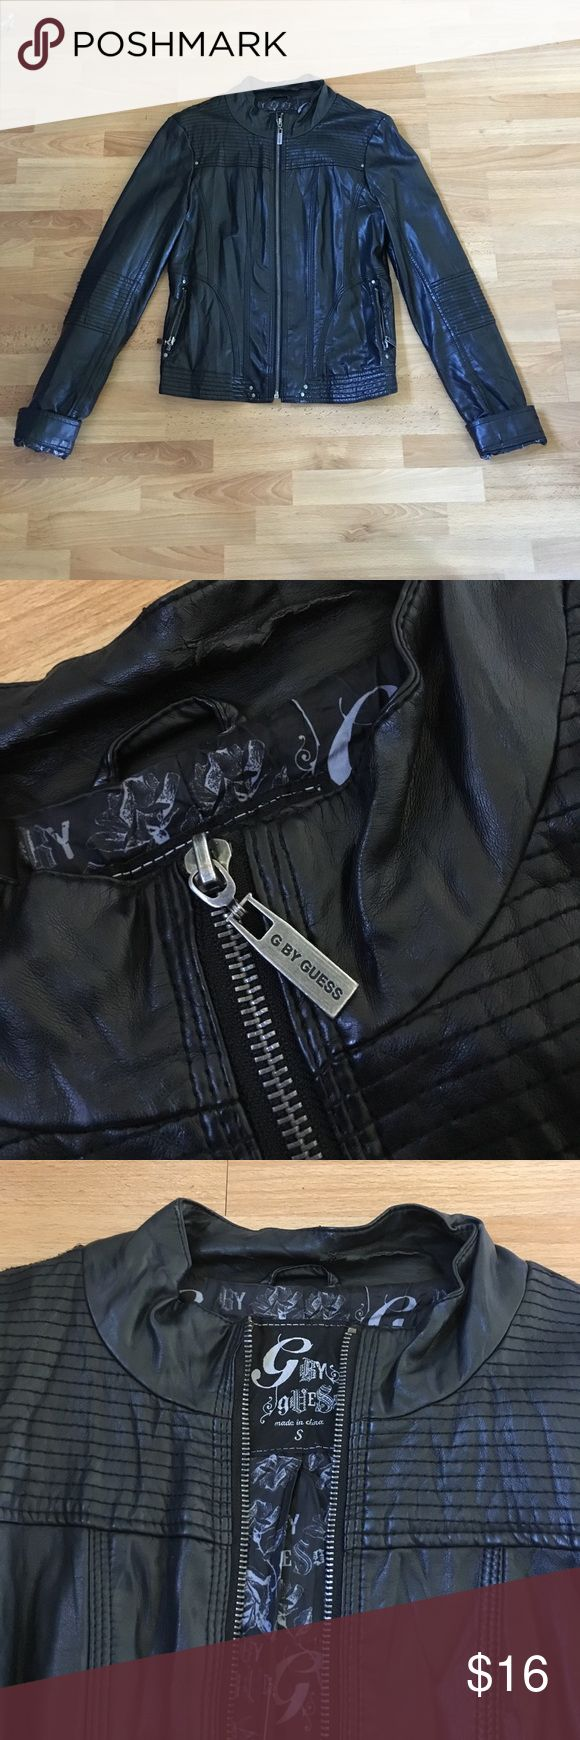 """Faux Leather jacket G by GUESS Leather jacket """"G by Guess."""" The faux jacket is in great condition, picture of the model with the jacket is not the same exact jacket as the one that is for sale but it IS similar in style. G by Guess Jackets & Coats Utility Jackets"""